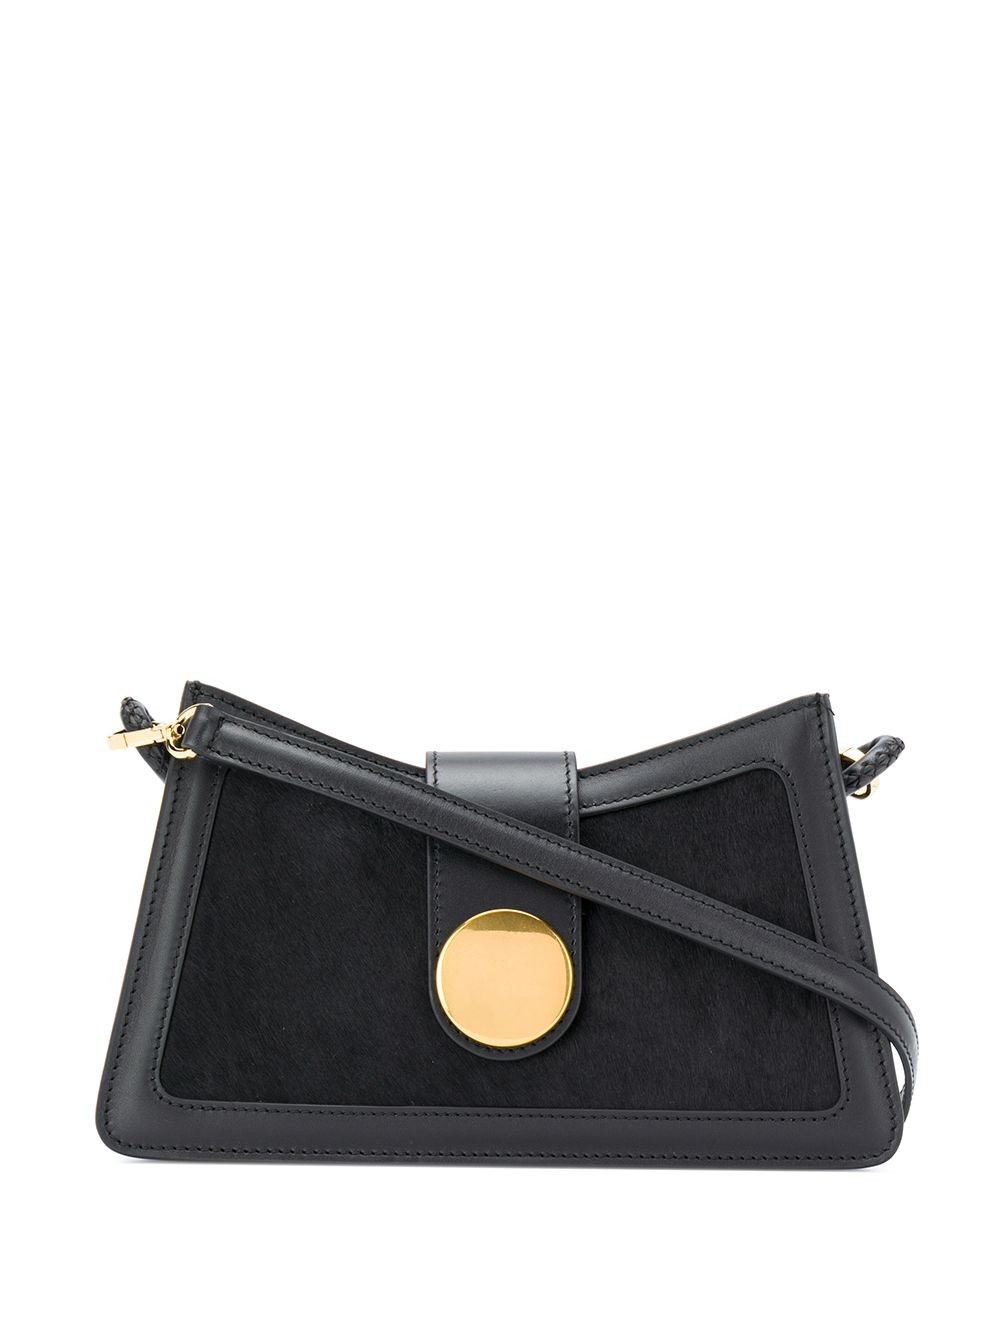 BAGUETTE CALF PONY BLACK